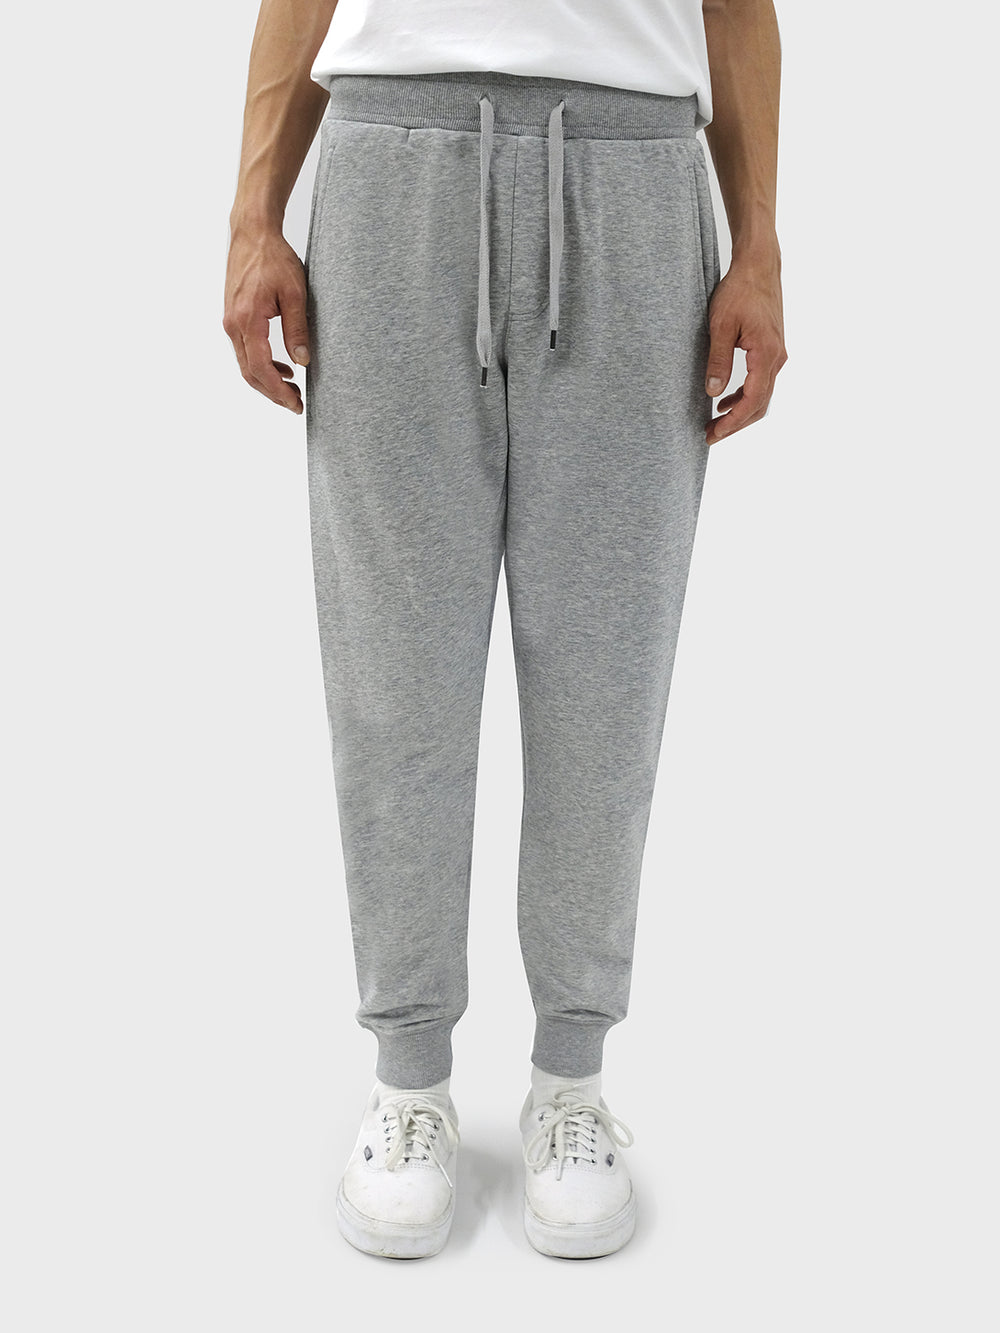 black friday deals ons mens clothing sweatpants in GREY H